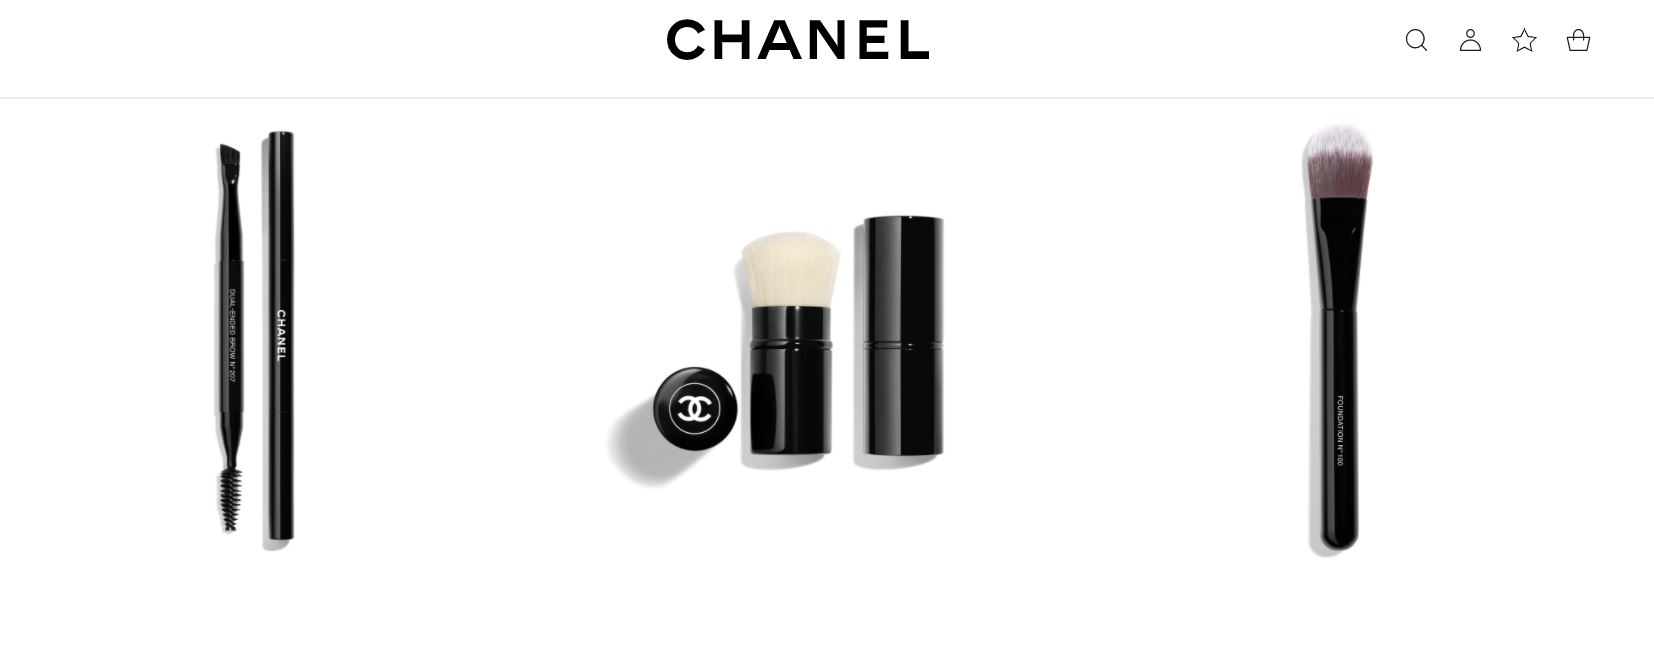 pennelli chanel